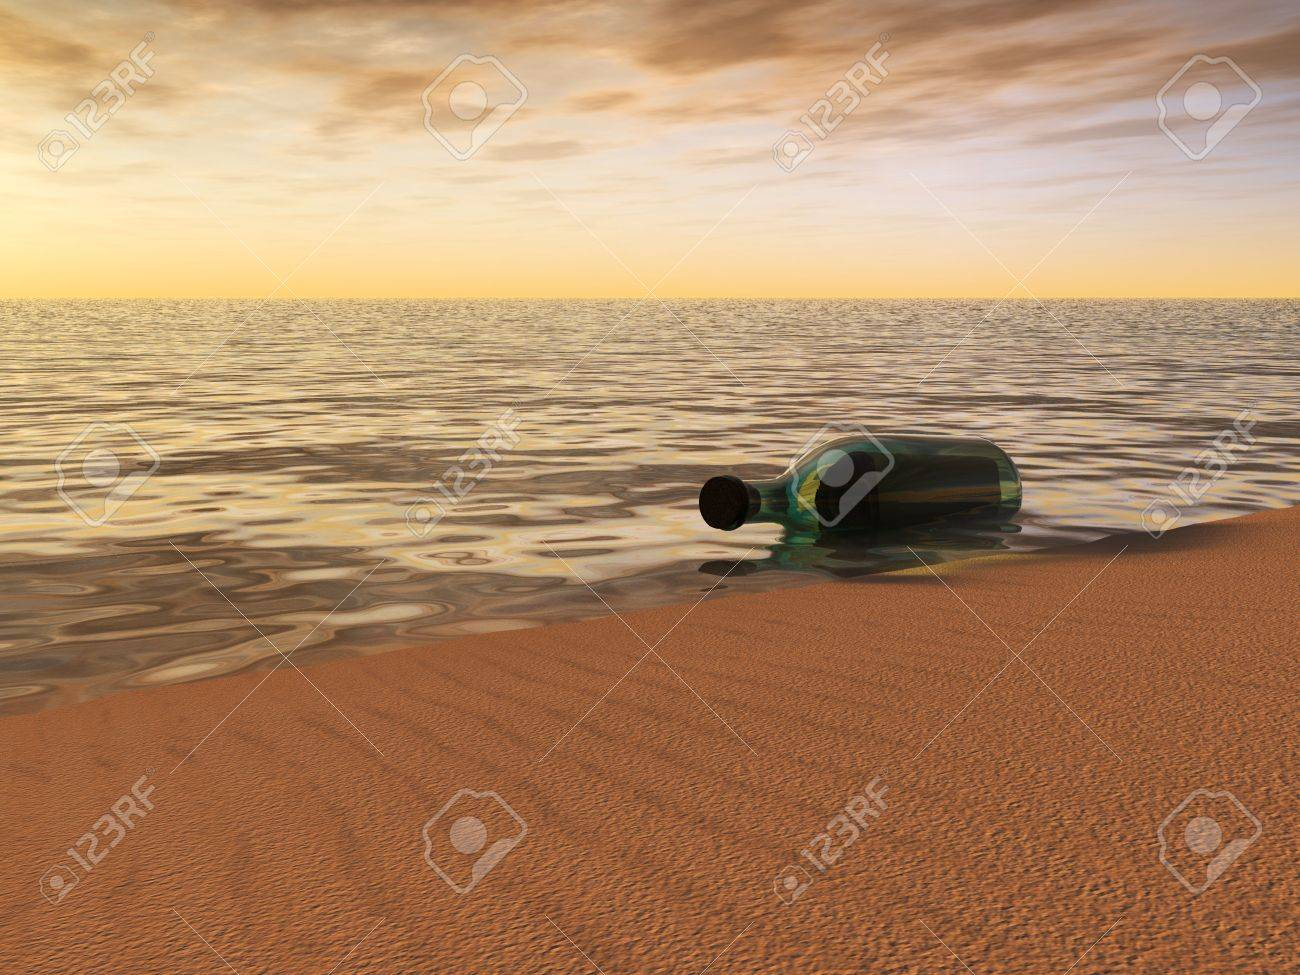 A bottle with a message in it lying at the beach just by the waterside at sunset. Stock Photo - 4858707